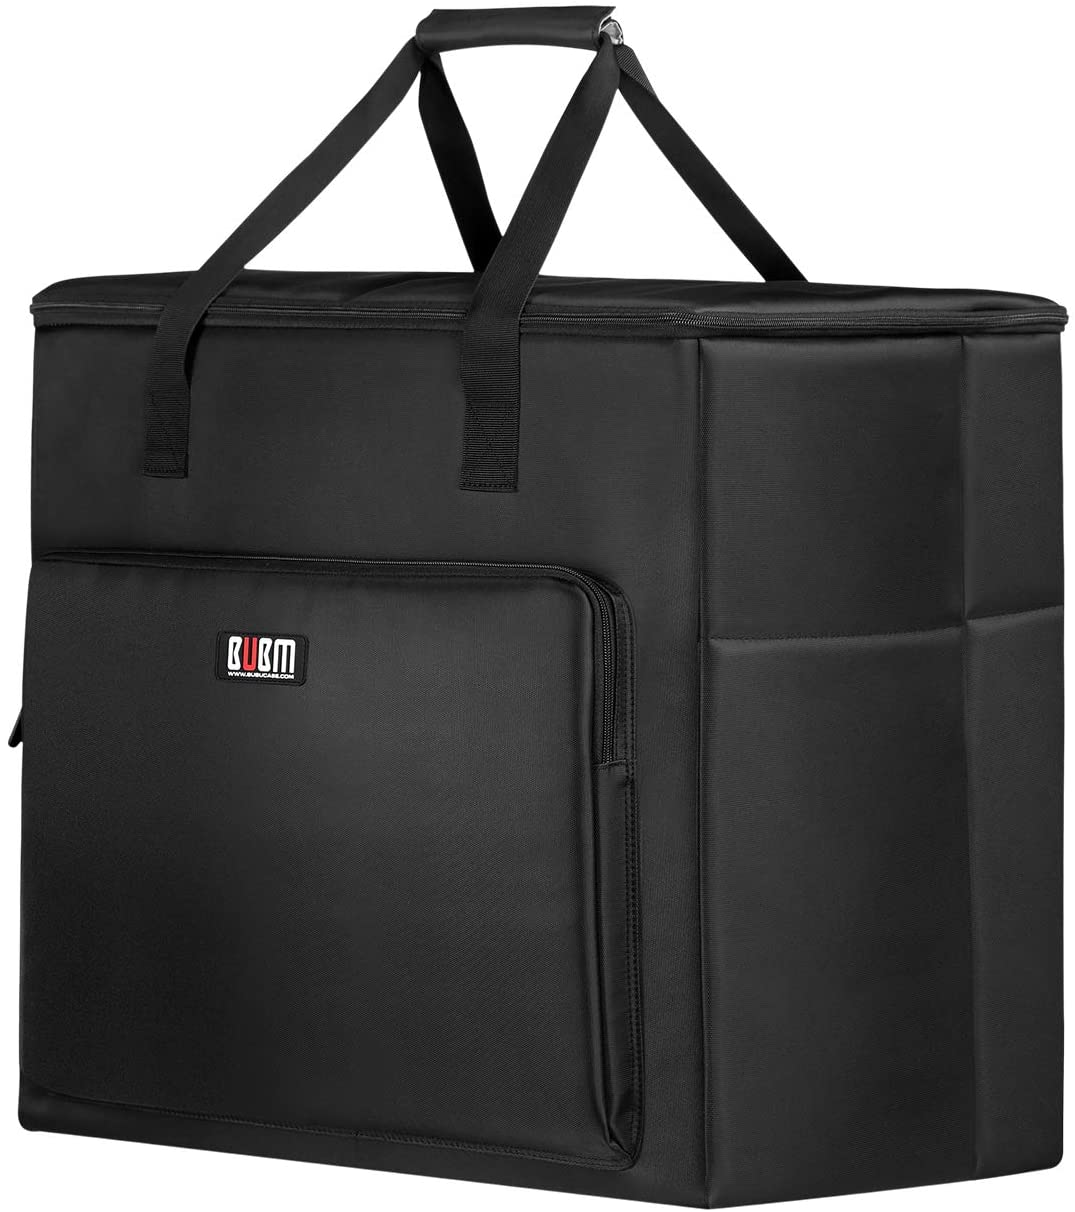 BUBM Multi-Pocket Large Capacity Desktop PC Computer Travel Storage Carrying Case Bag Organizer for 27 Inch Computer Main Processor Monitor Keyboard and Accessories(Size:XL)